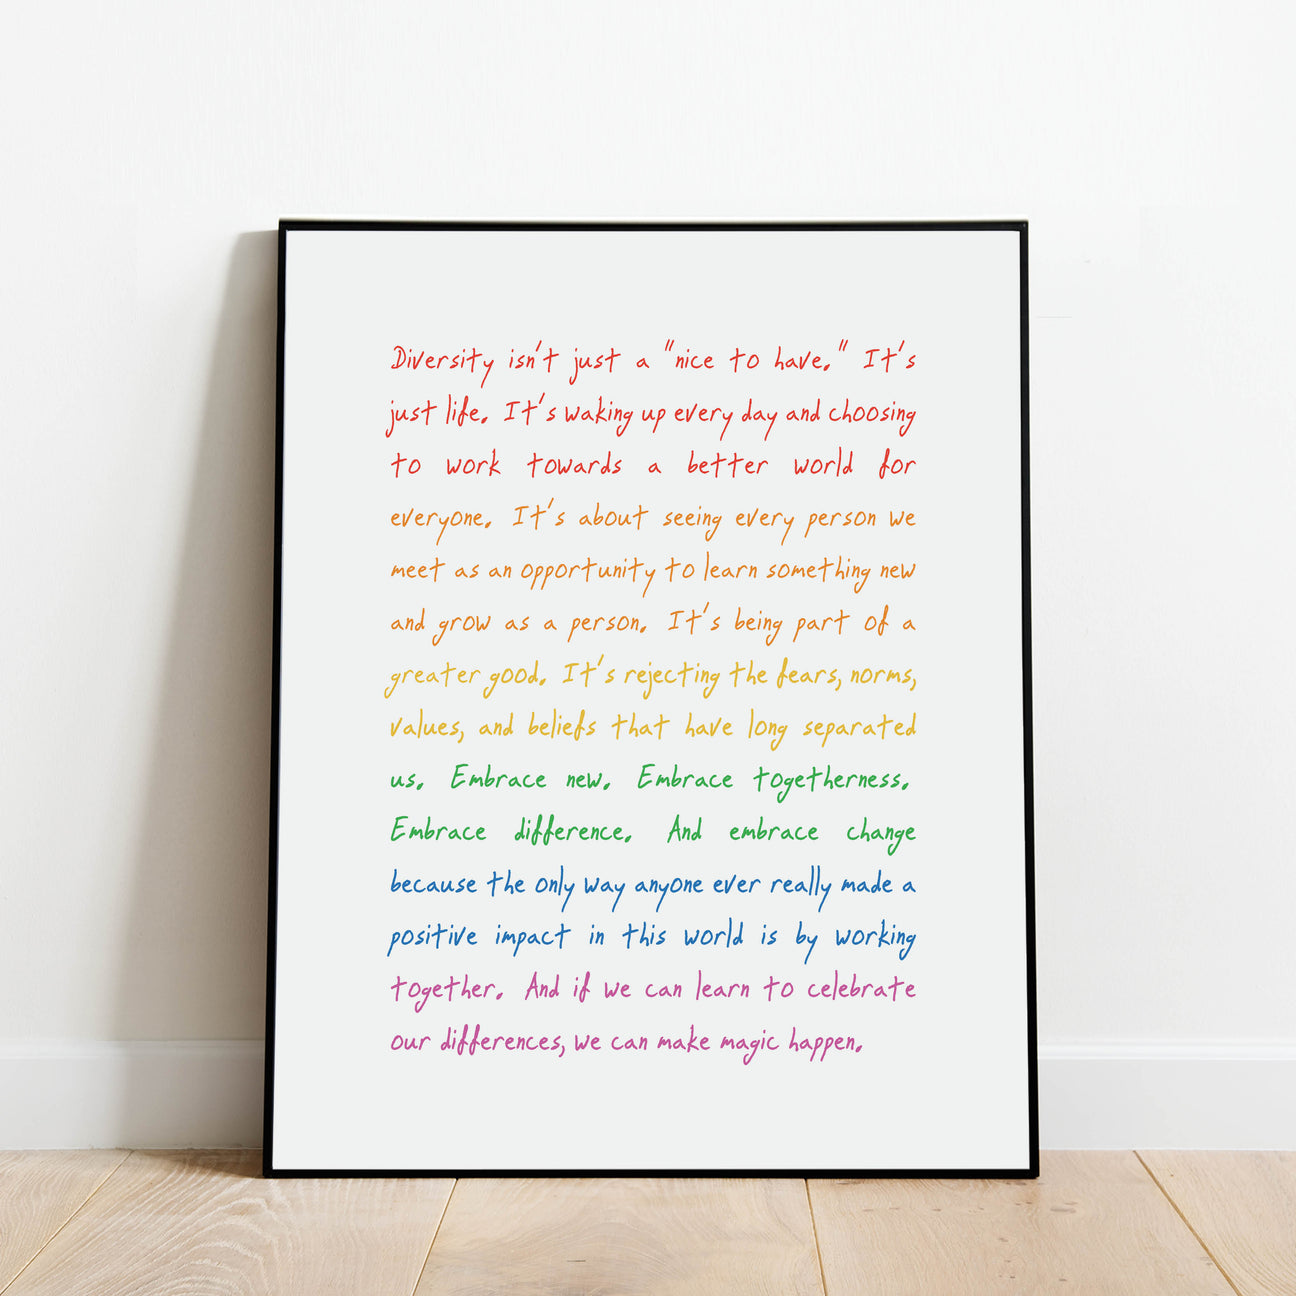 Embrace Differences - Diversity and Inclusion Print by Culver and Cambridge